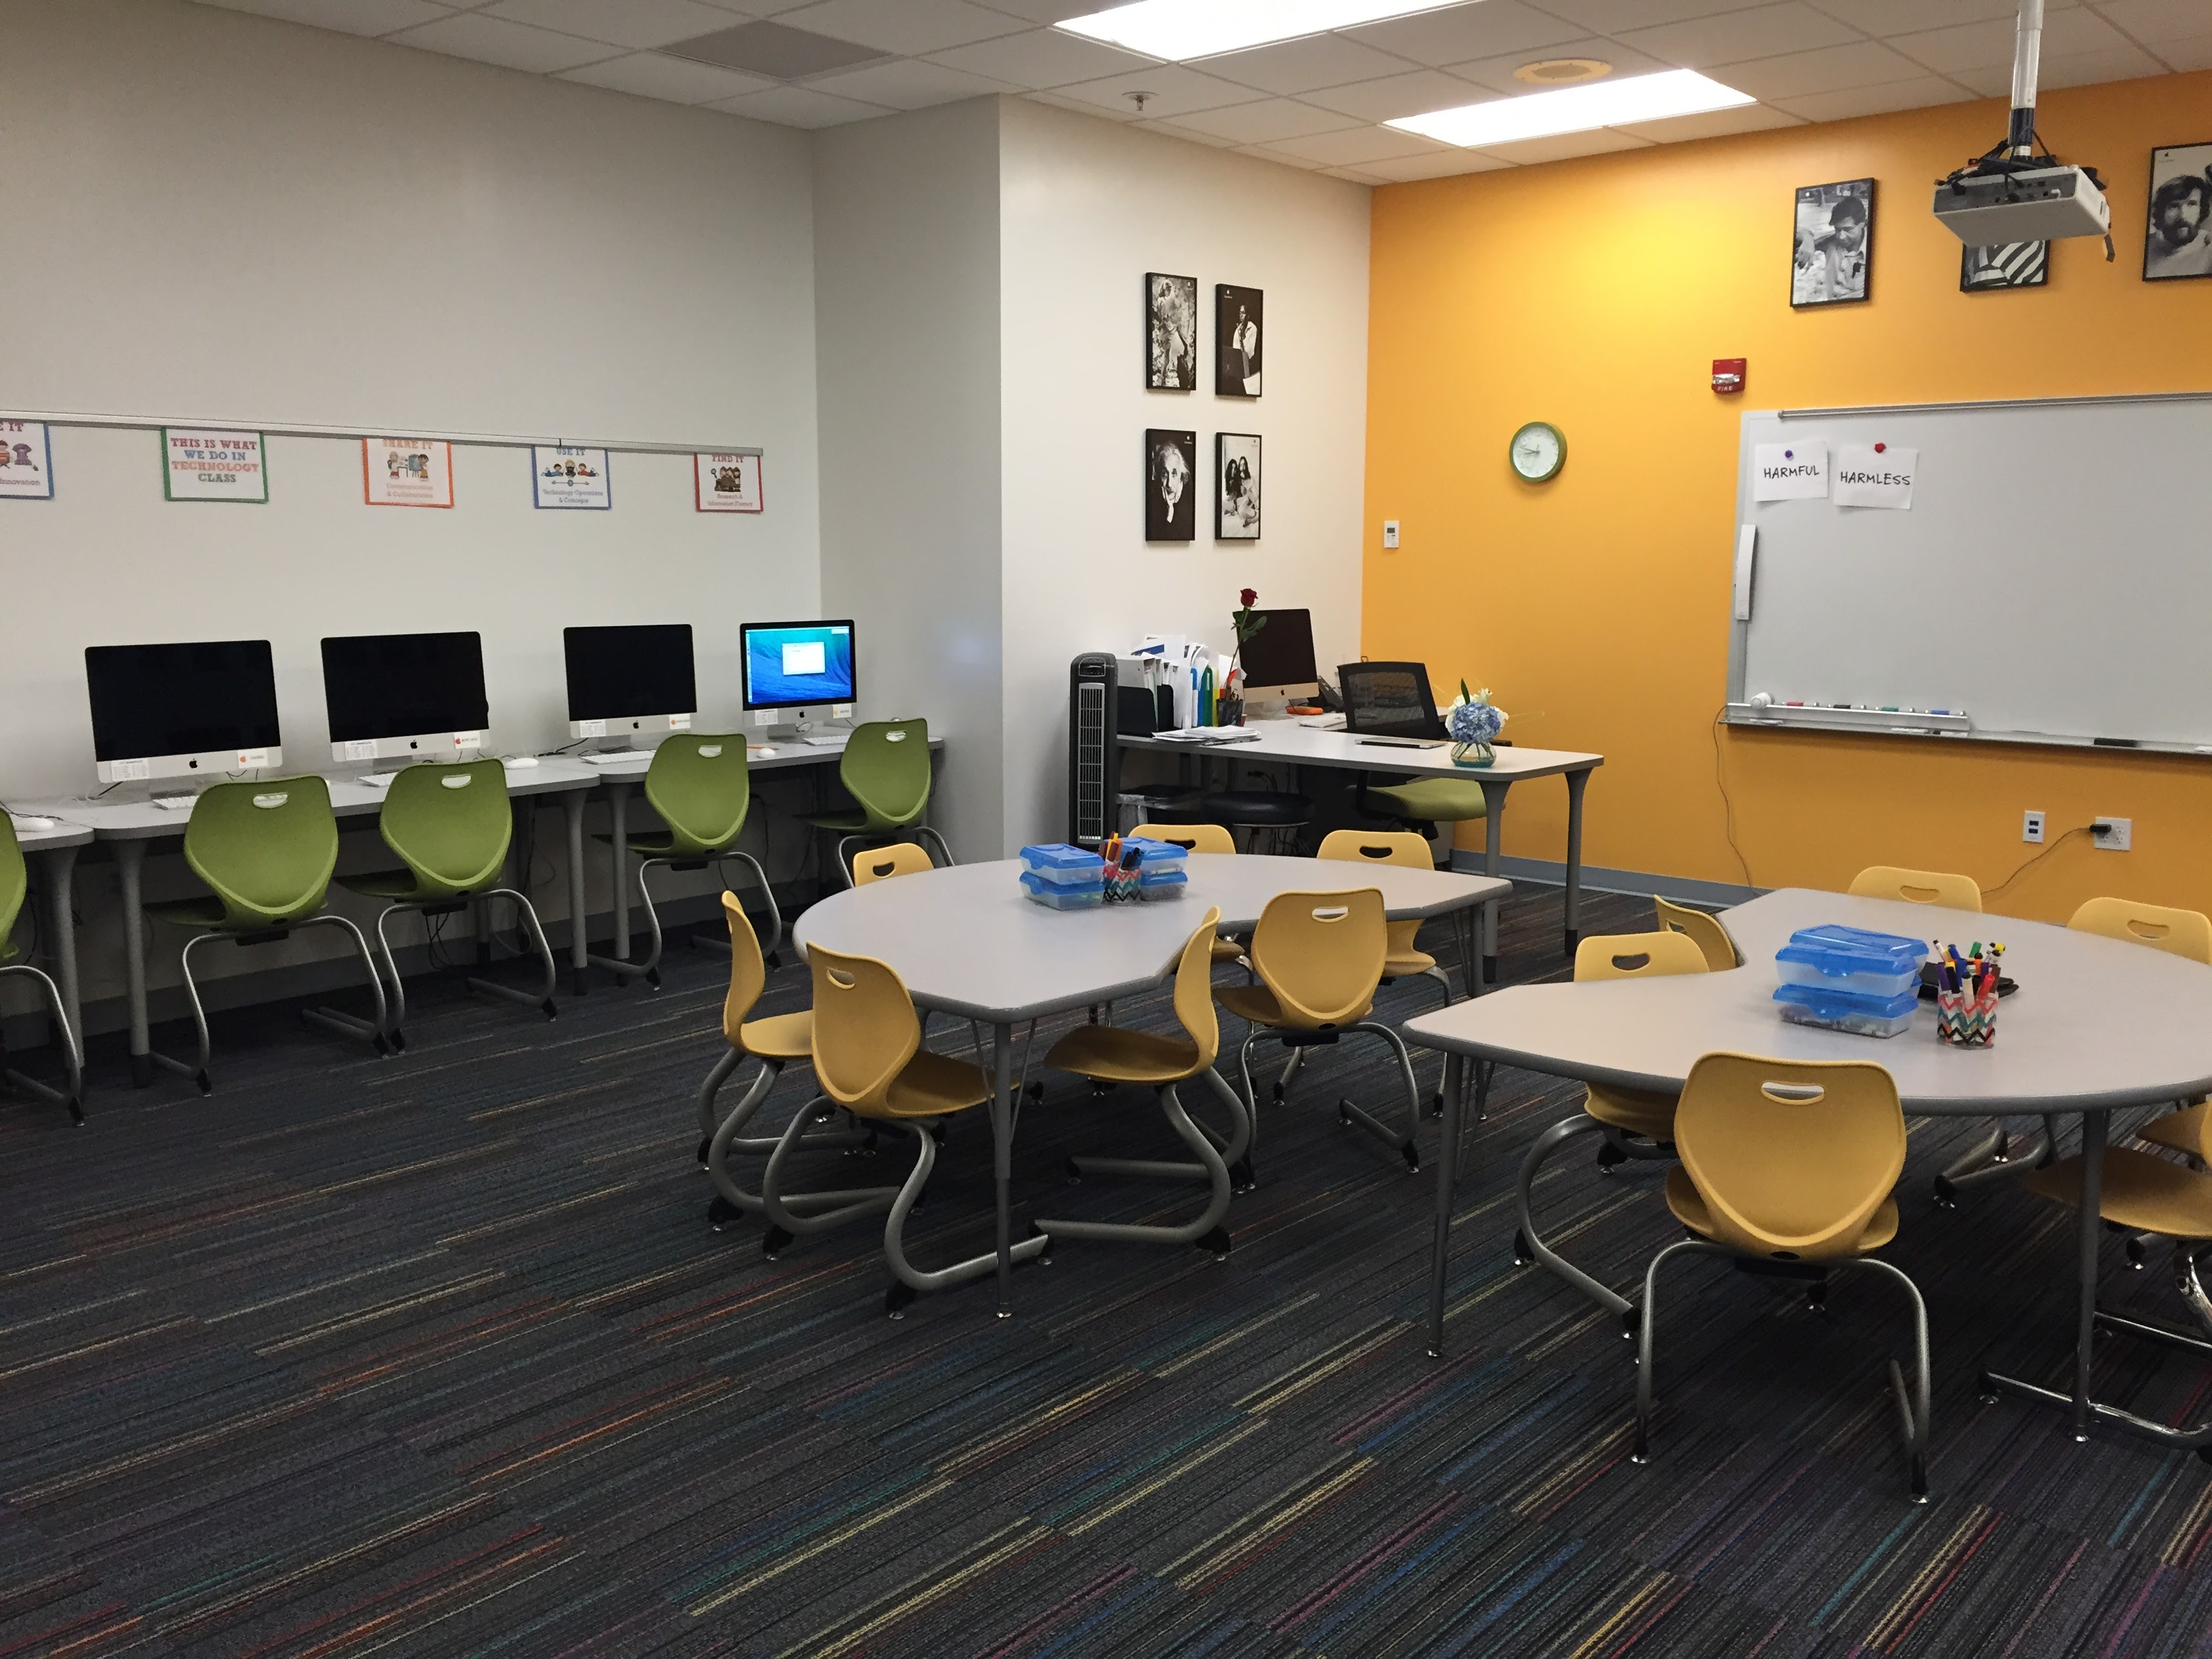 Classroom Furnitures ~ Ways to upgrade your classroom design cult of pedagogy